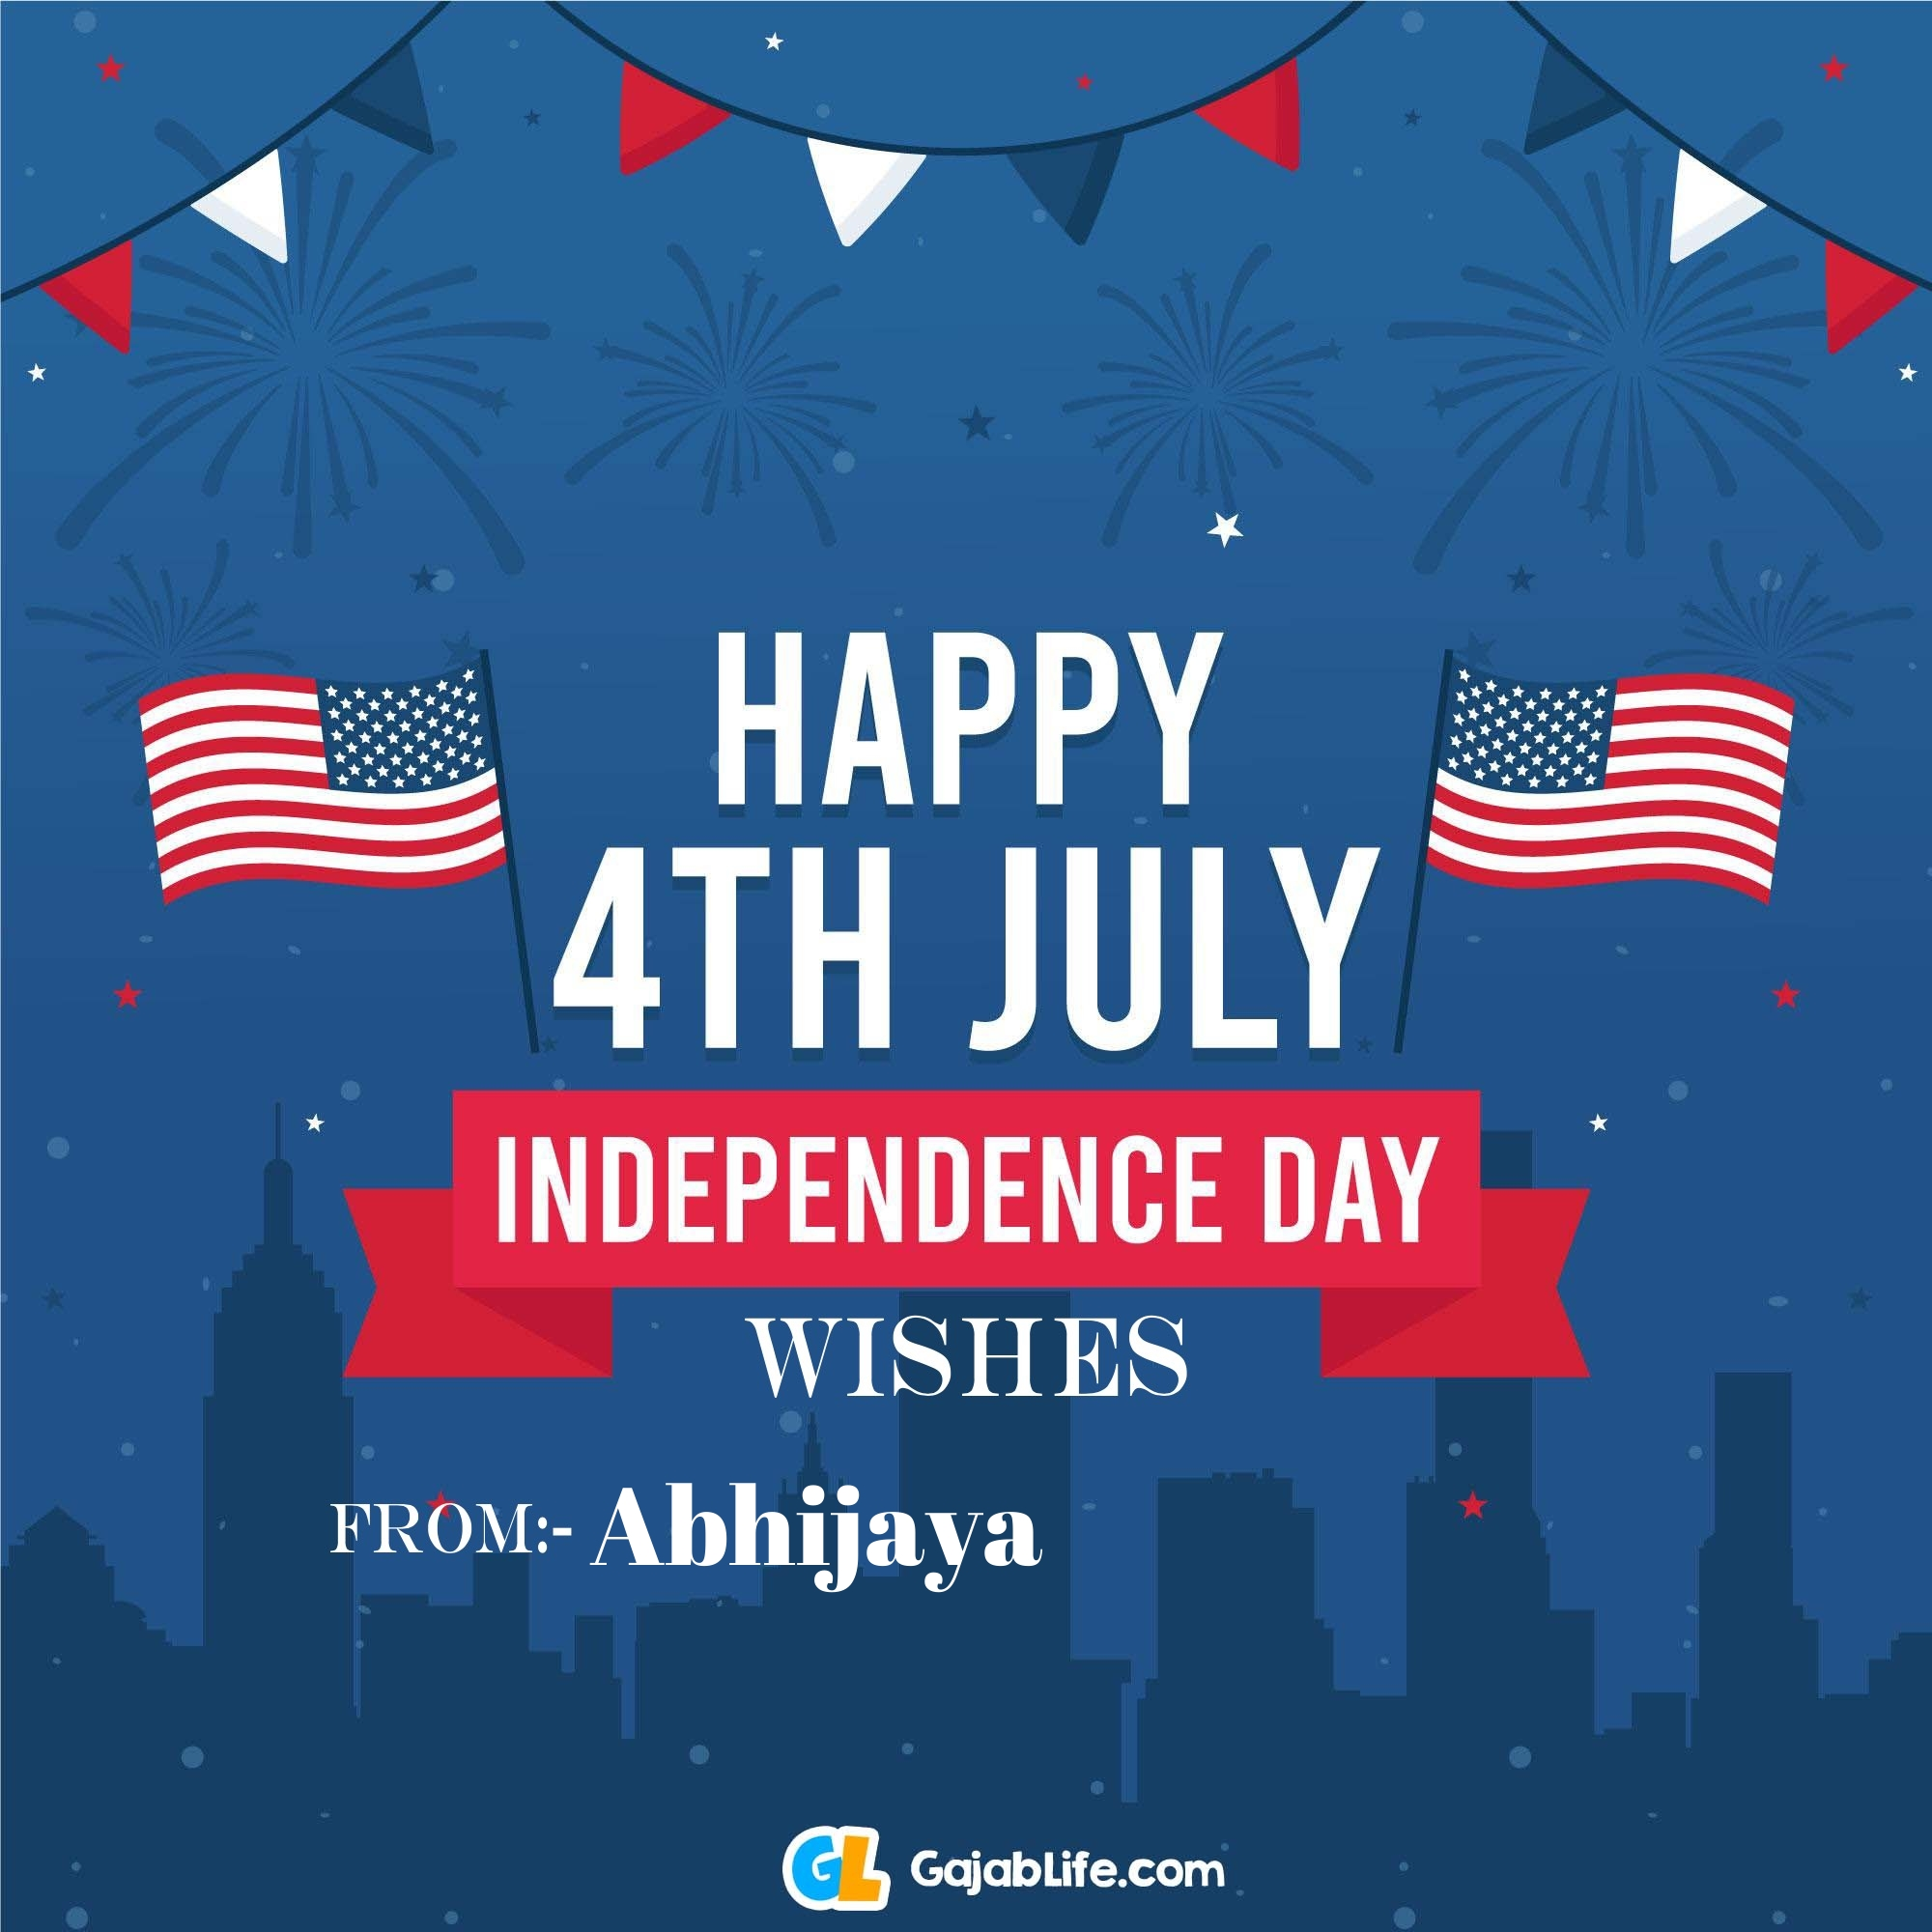 Abhijaya happy independence day united states of america images